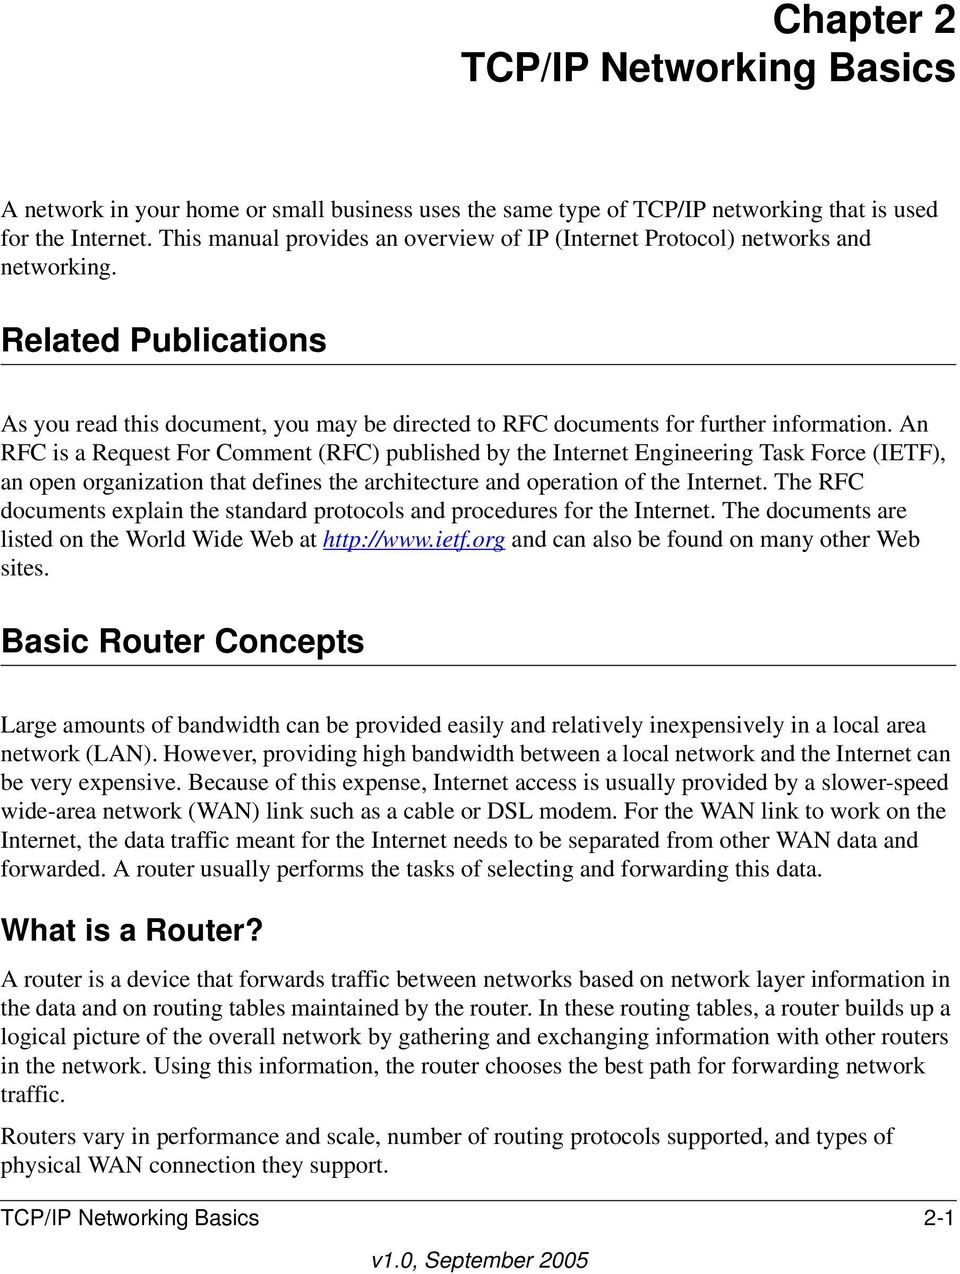 An RFC is a Request For Comment (RFC) published by the Internet Engineering Task Force (IETF), an open organization that defines the architecture and operation of the Internet.